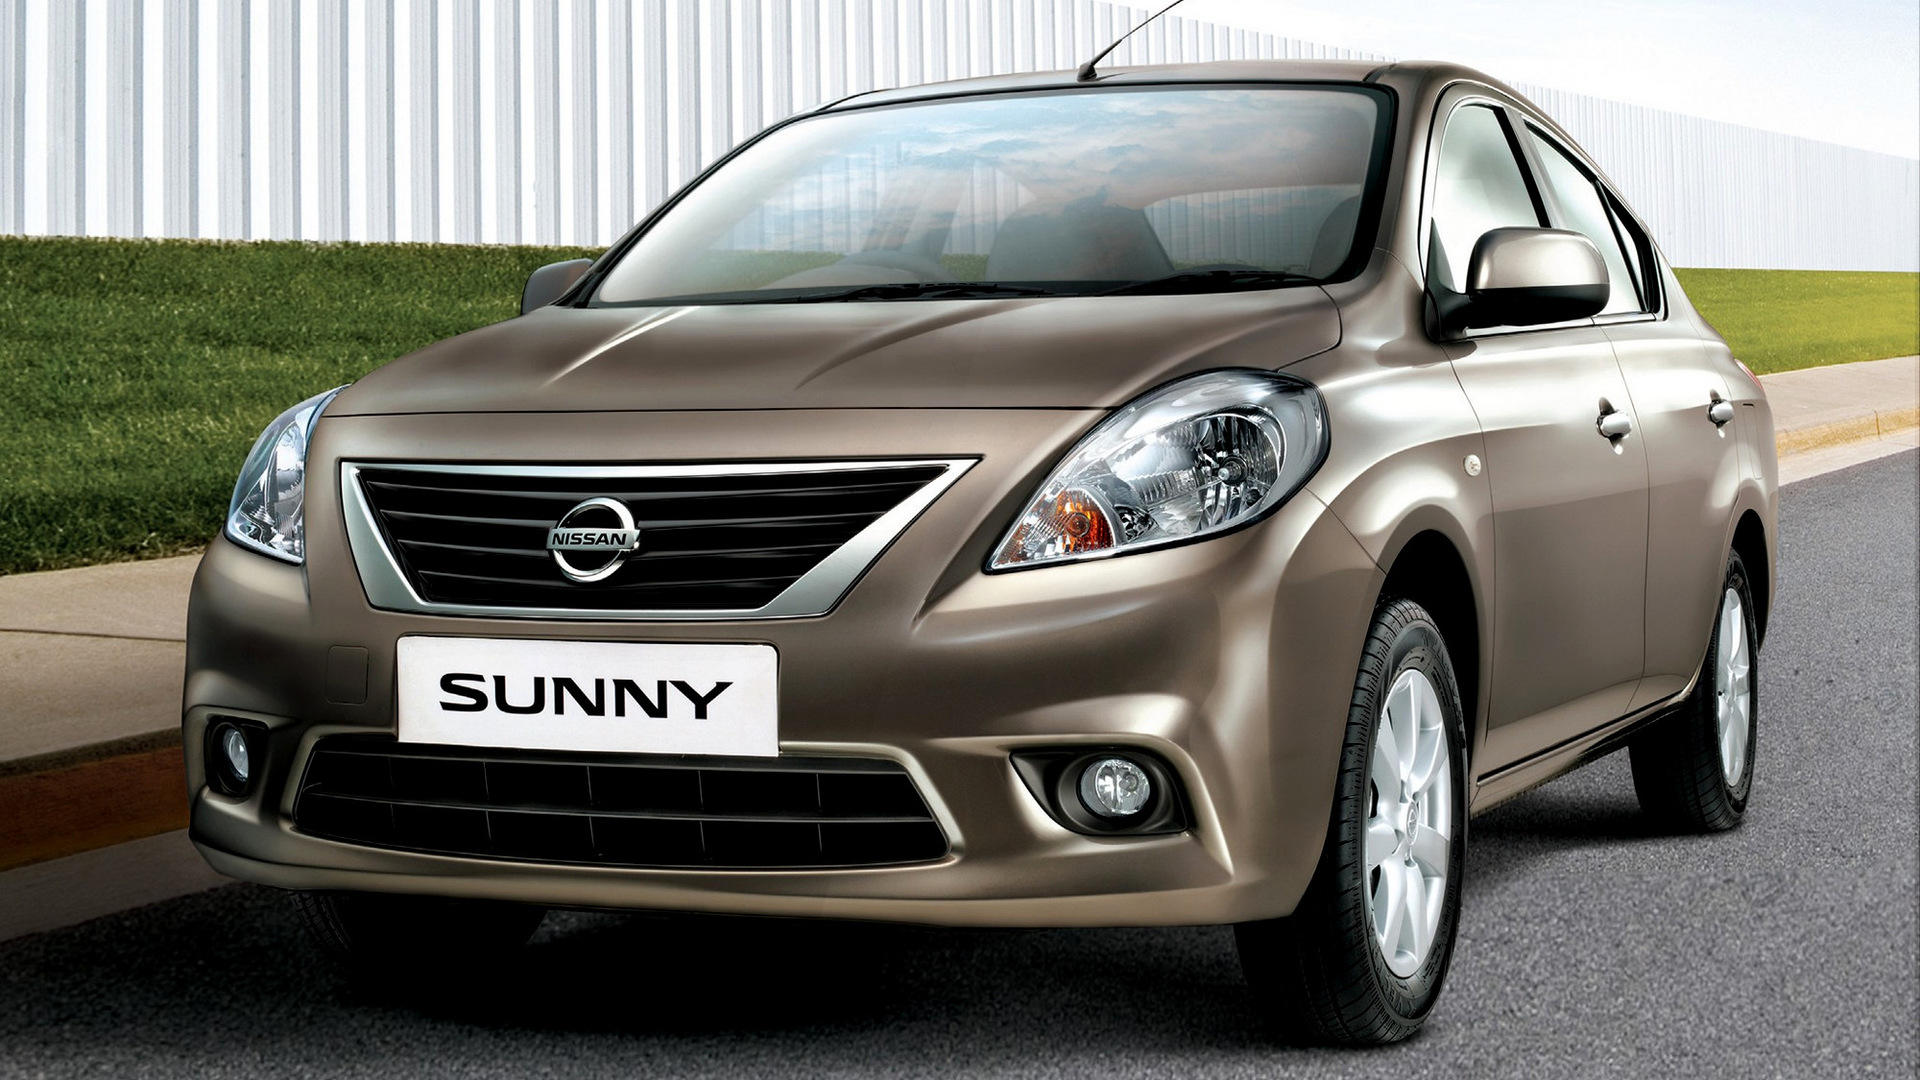 Nissan Sunny 2011 Wallpapers And Hd Images Car Pixel